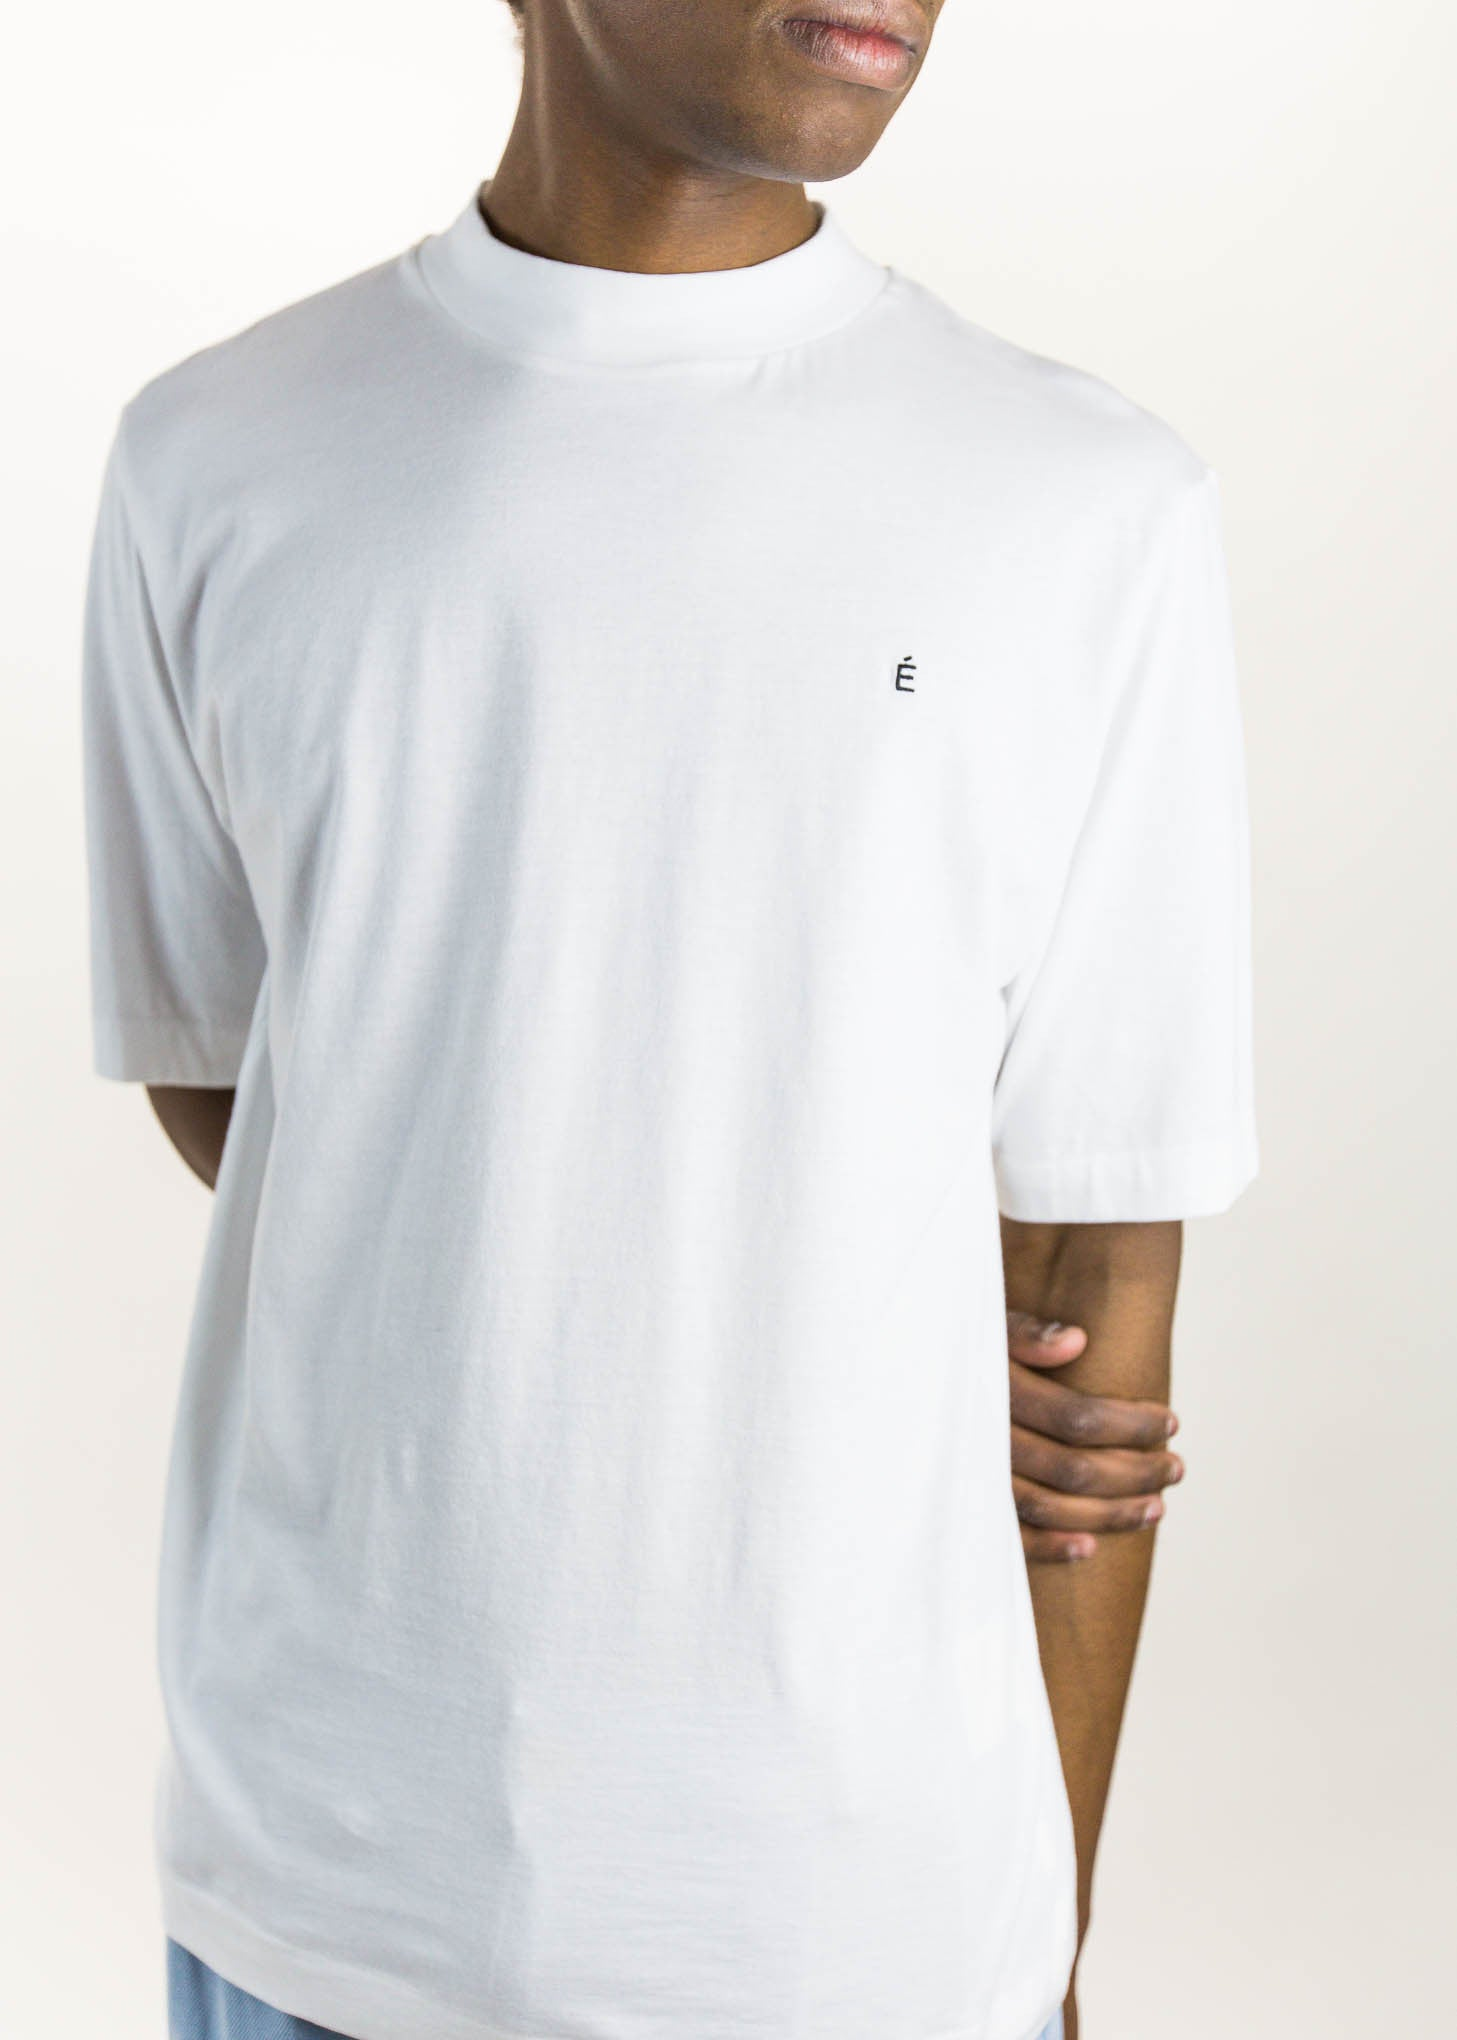 White Award T-Shirt